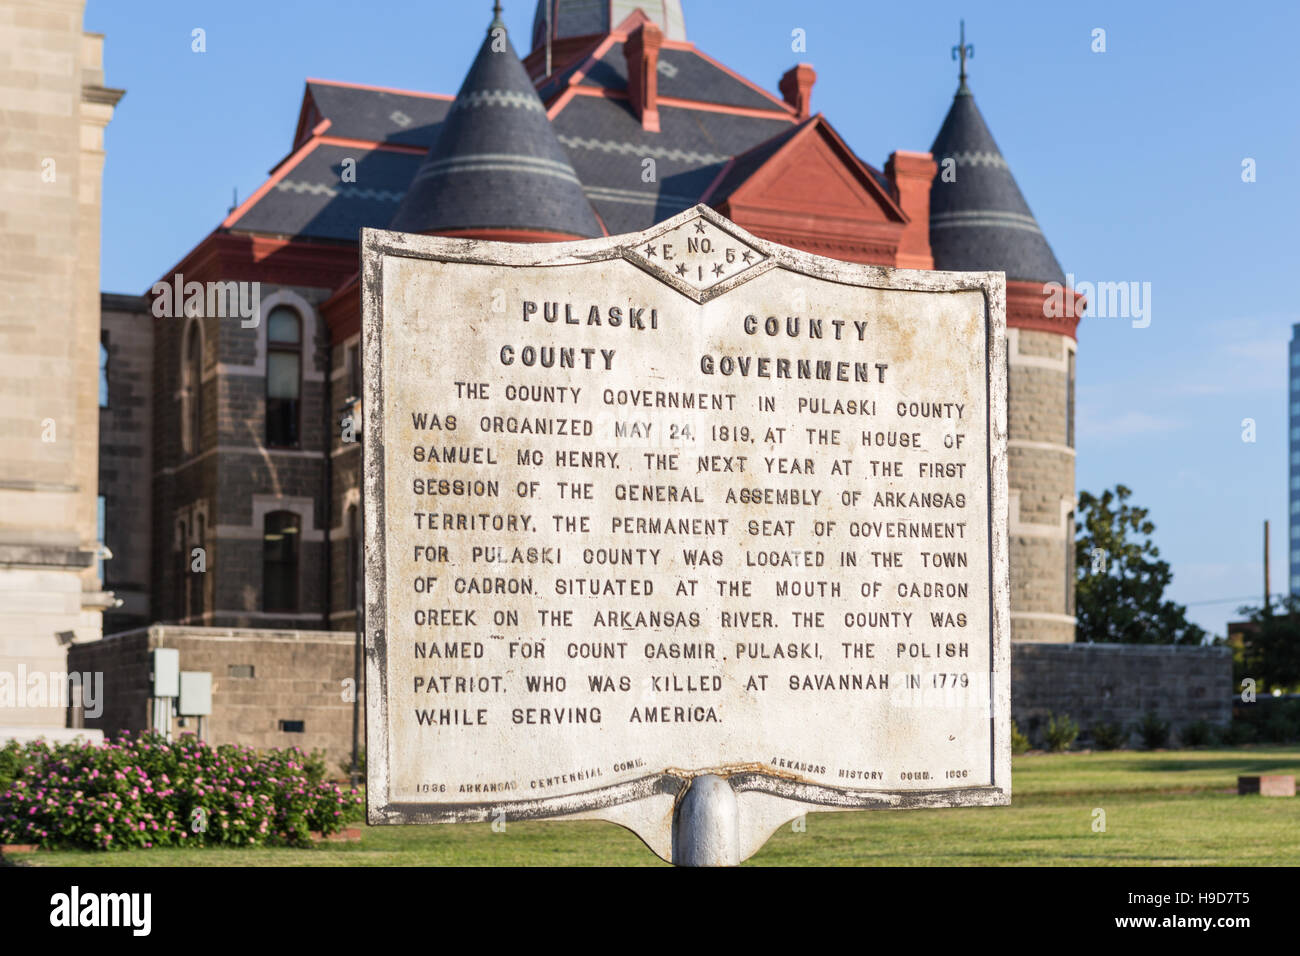 A historical marker summarizes the history of Pulaski County government outside the courthouse in Little Rock, Arkansas. - Stock Image